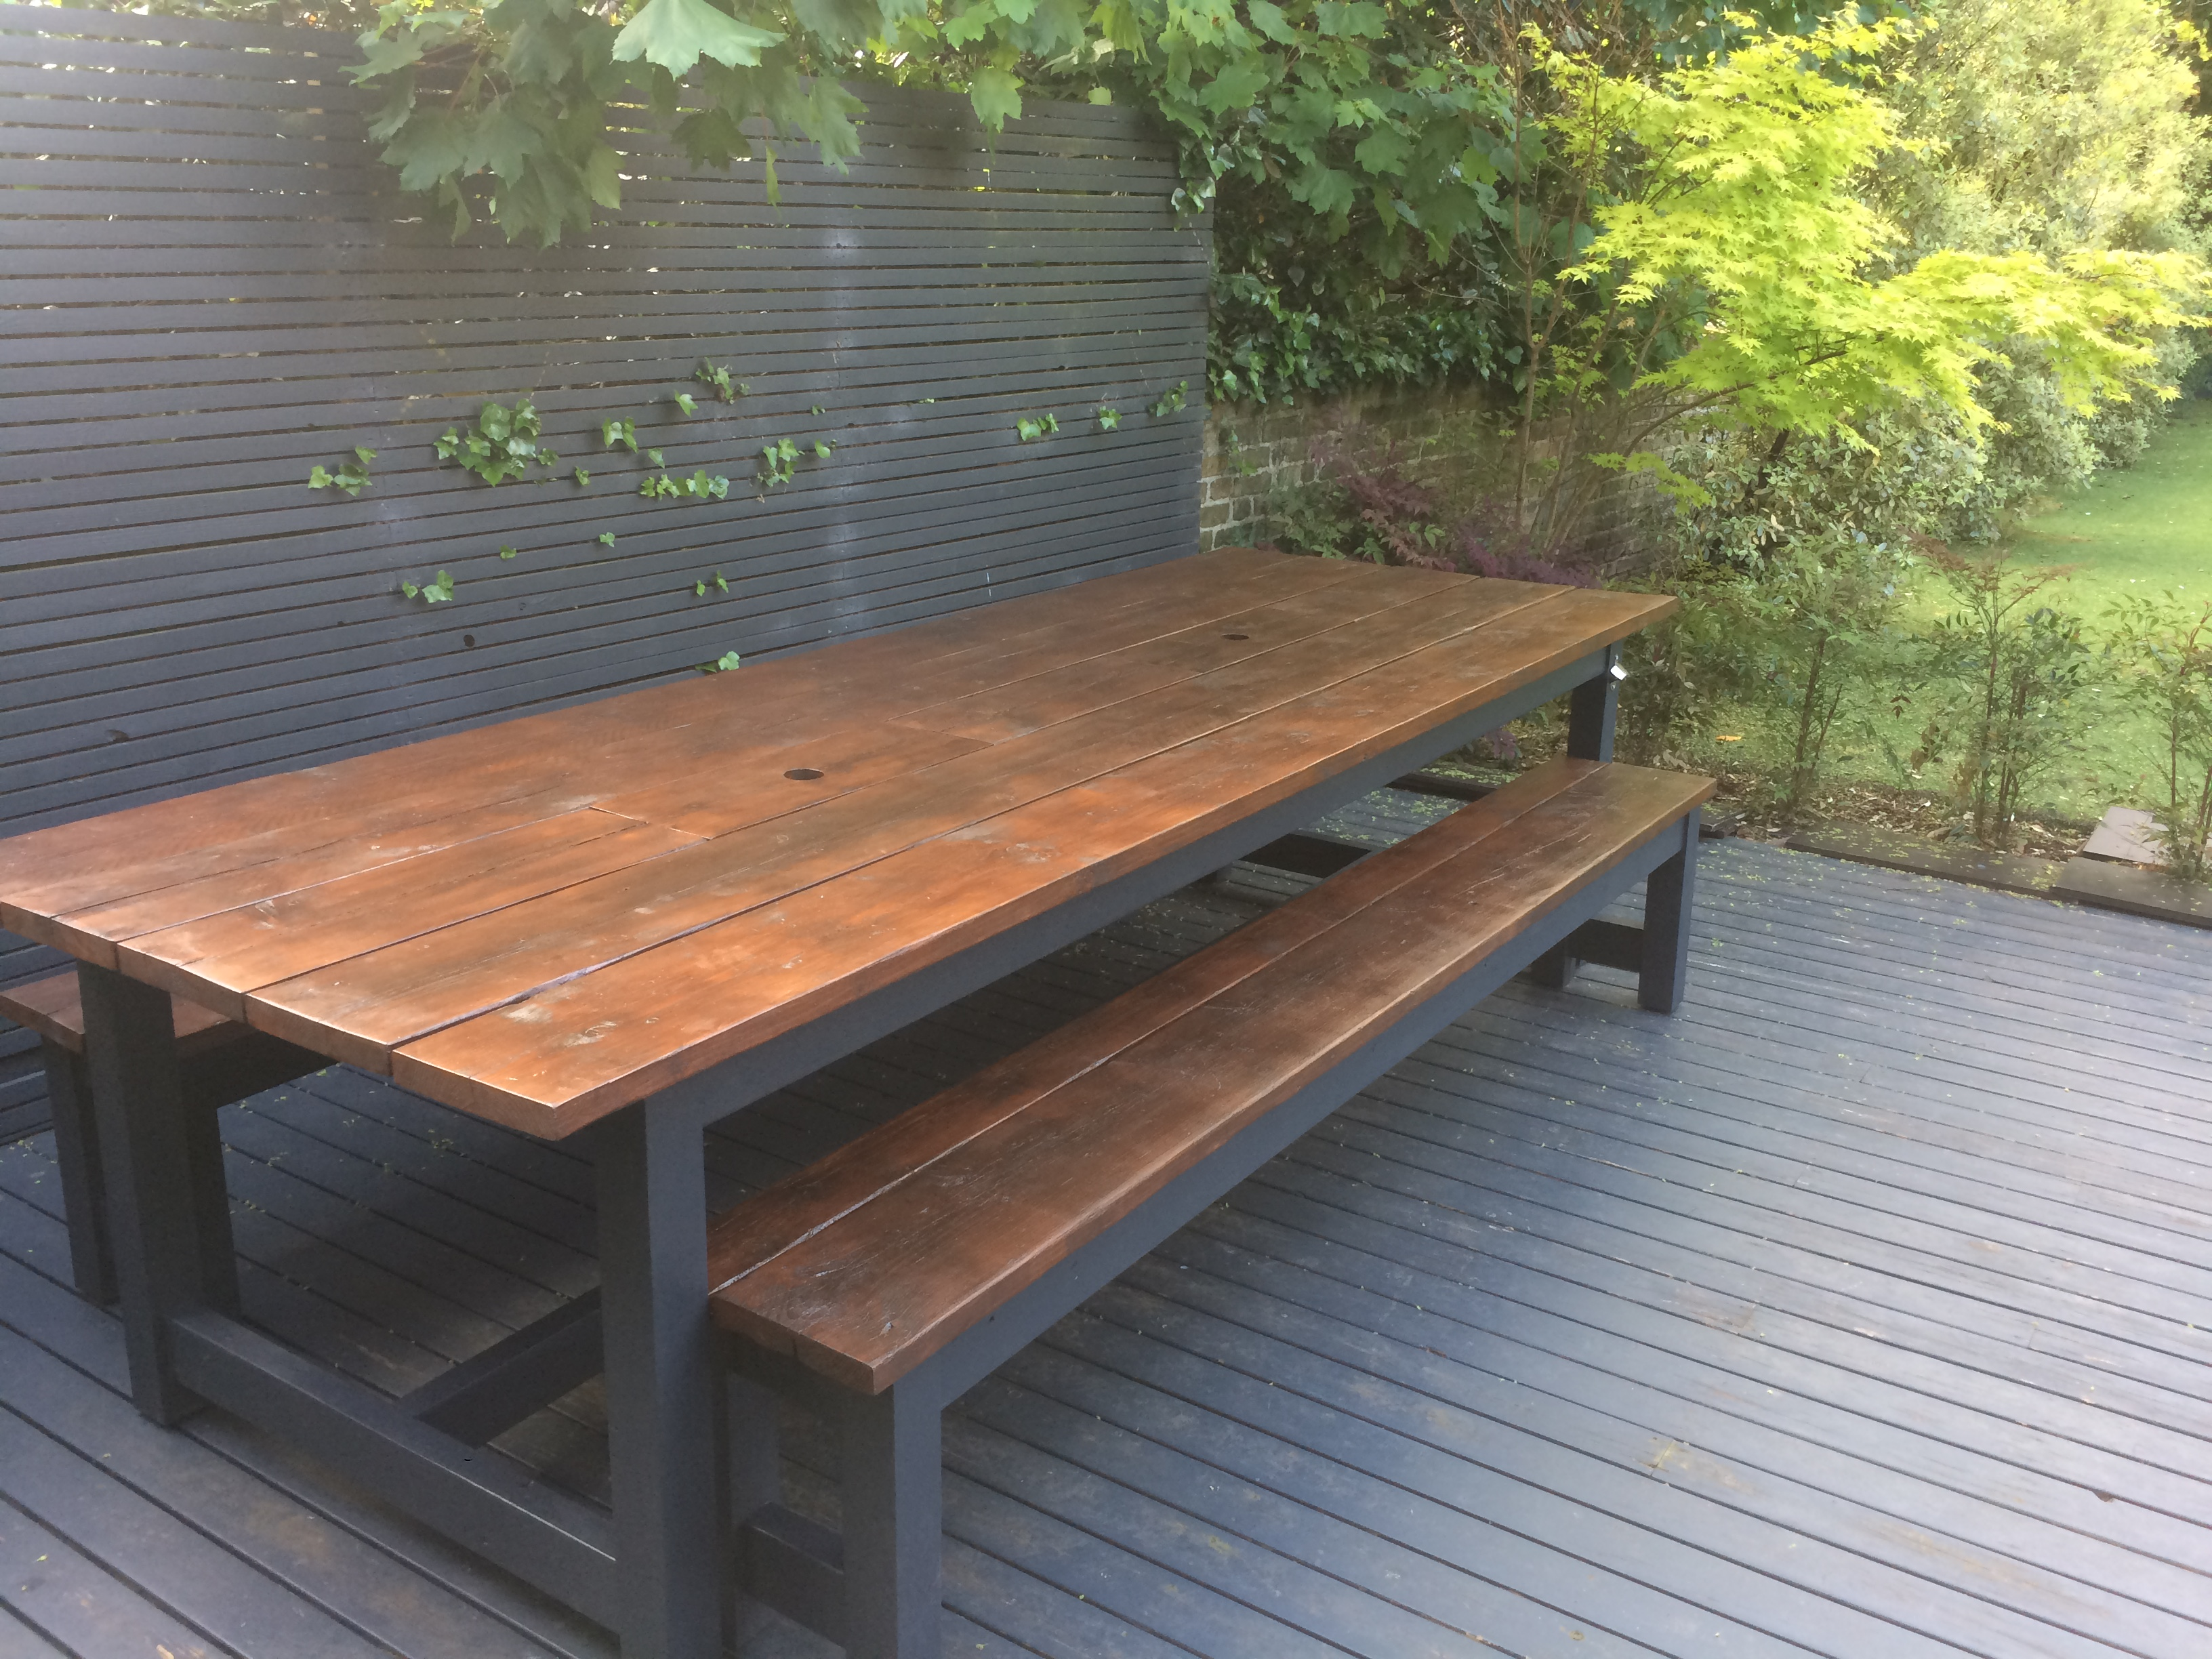 Sleek Rustic Patio Table & Reclaimed Wood Dining Patio Tables I Redhill I The Table Guy